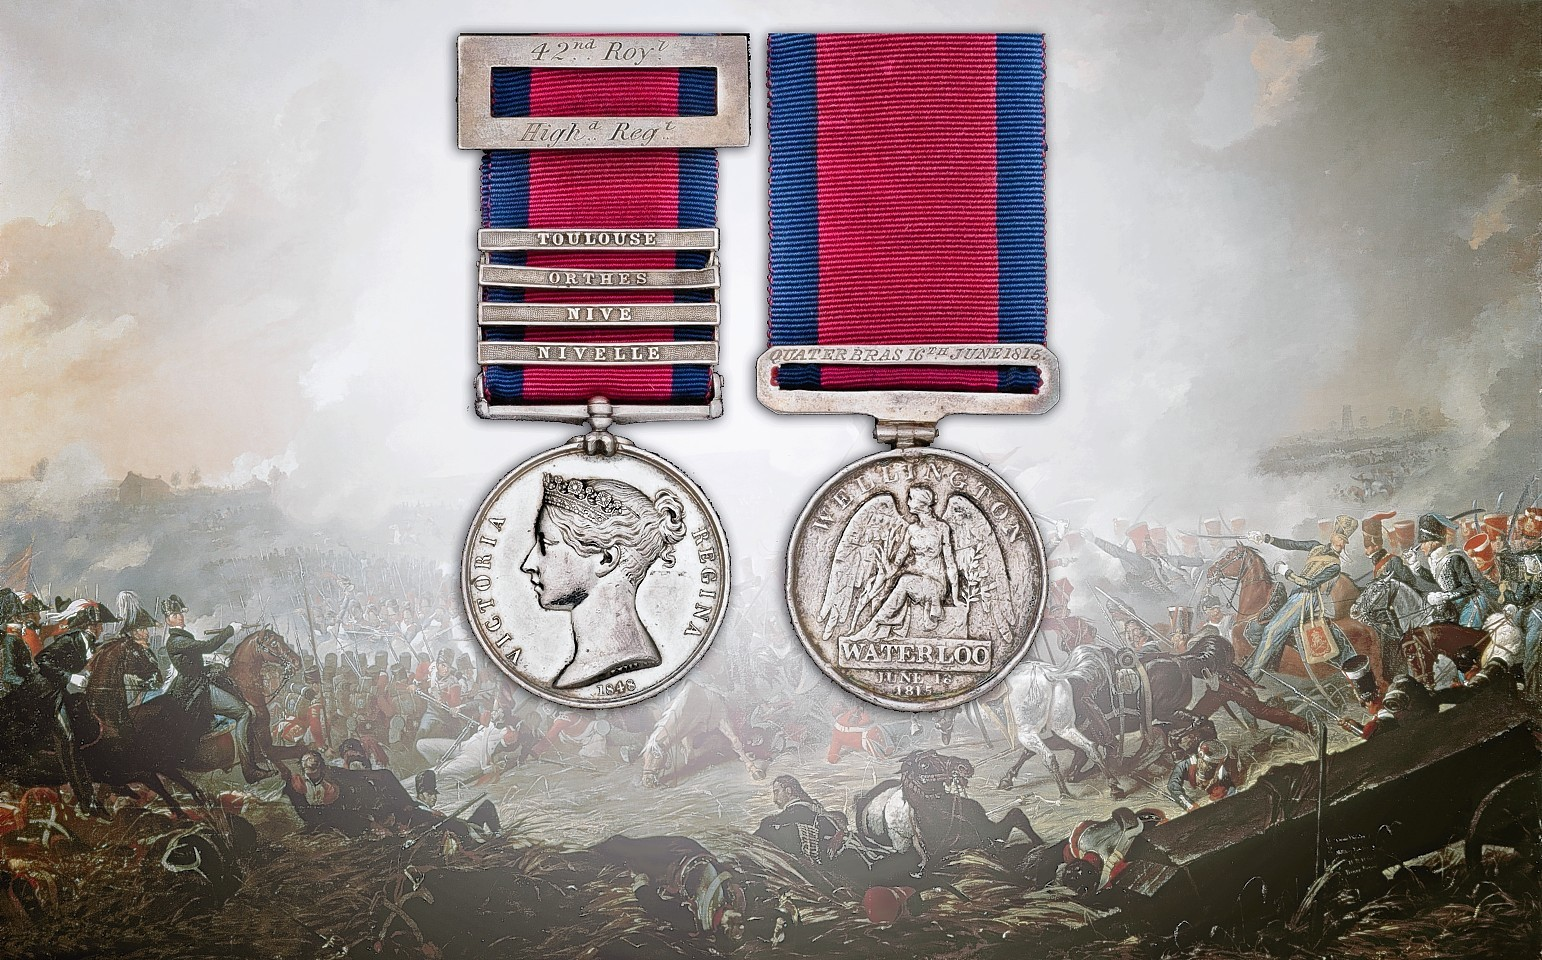 Wiliam Bowman's medals